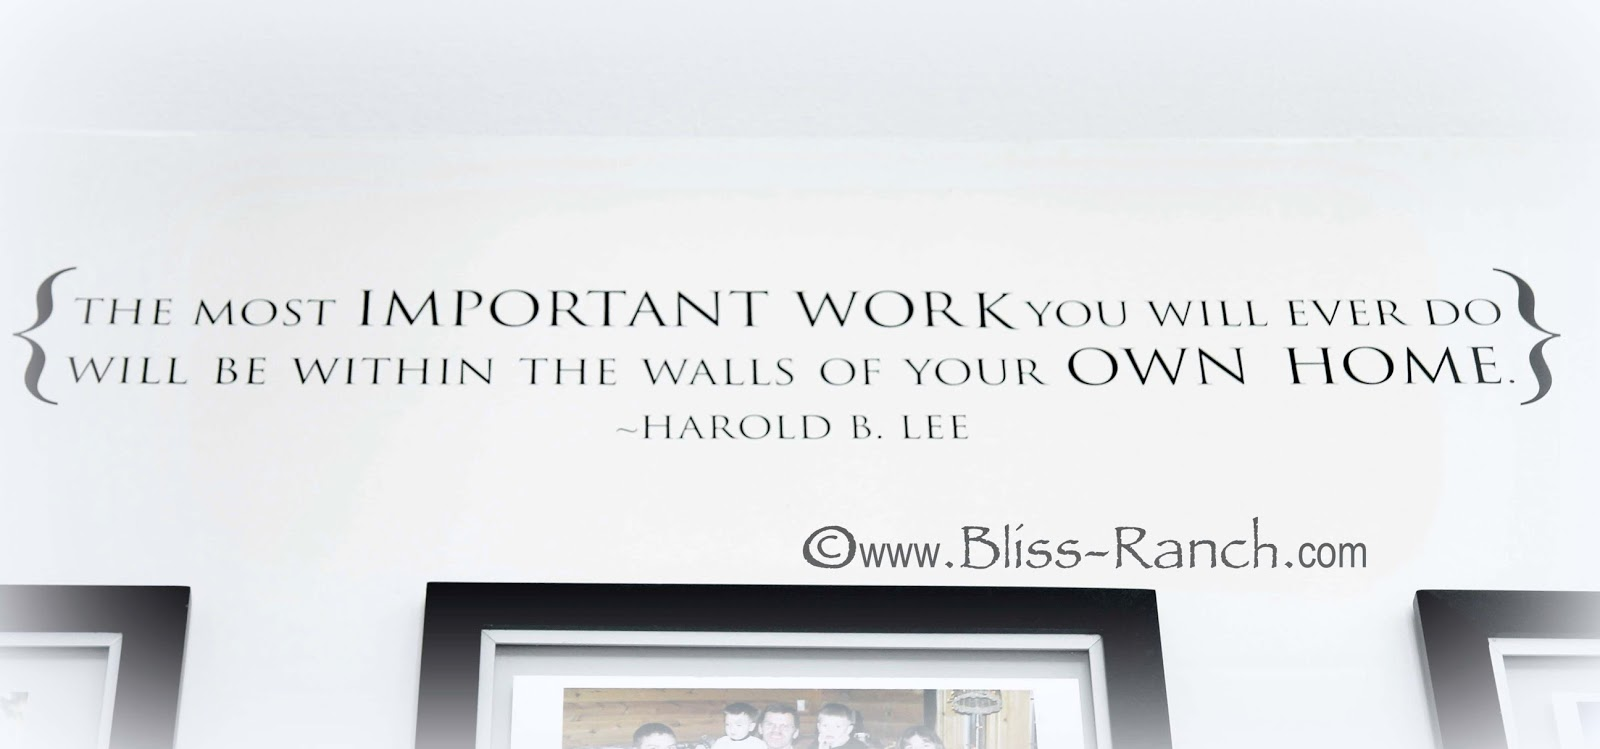 Wall Words, Bliss-Ranch.com